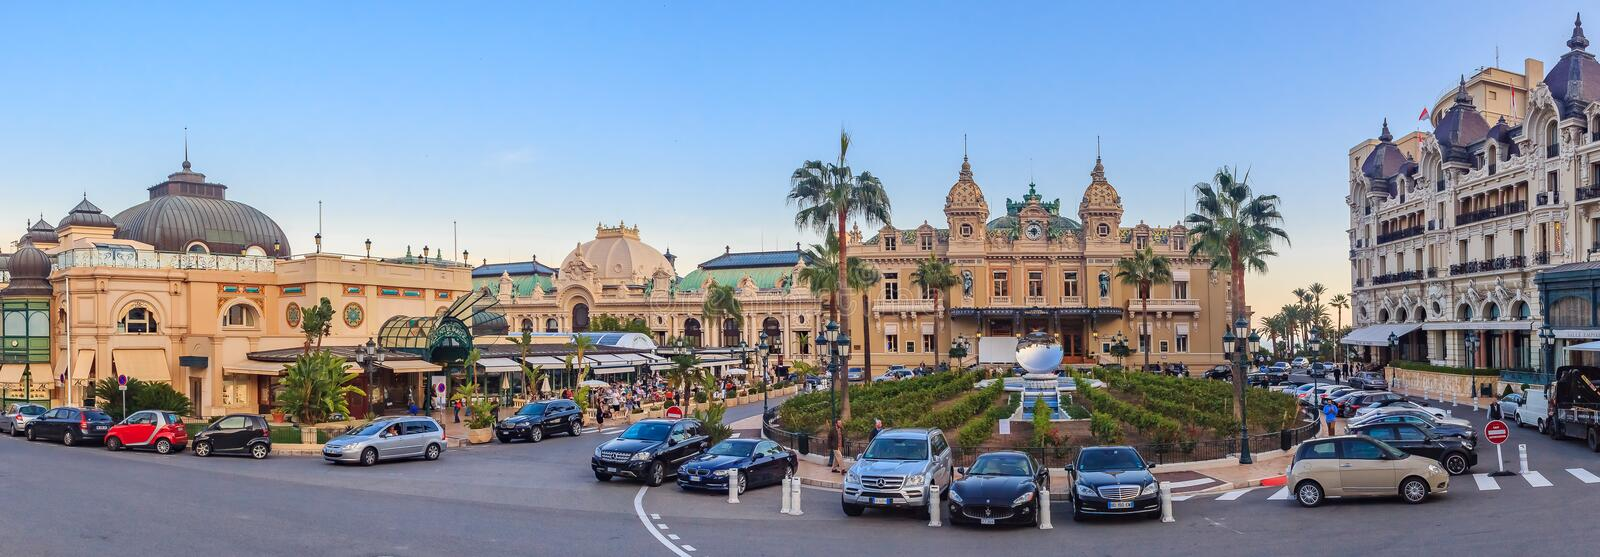 Place du Casino in Monte Carlo Monaco with Grand Casino and Hotel de Paris with the mirror fountain out front royalty free stock images